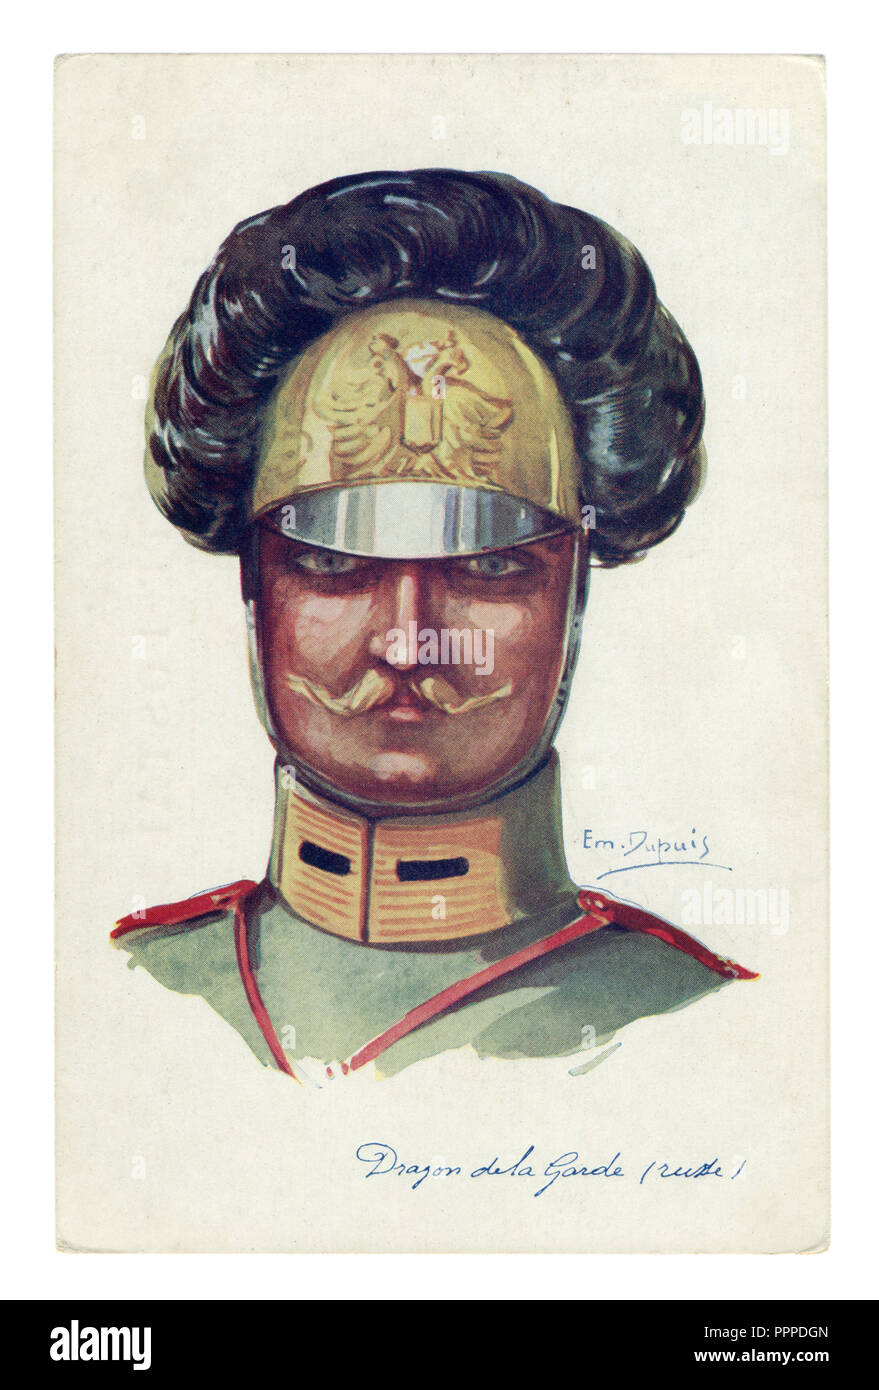 French historical postcard: portrait of a Cavalryman-Dragoon of the Imperial Russian guard, handsome man with a thin mustache, world war one 1914-1918 - Stock Image